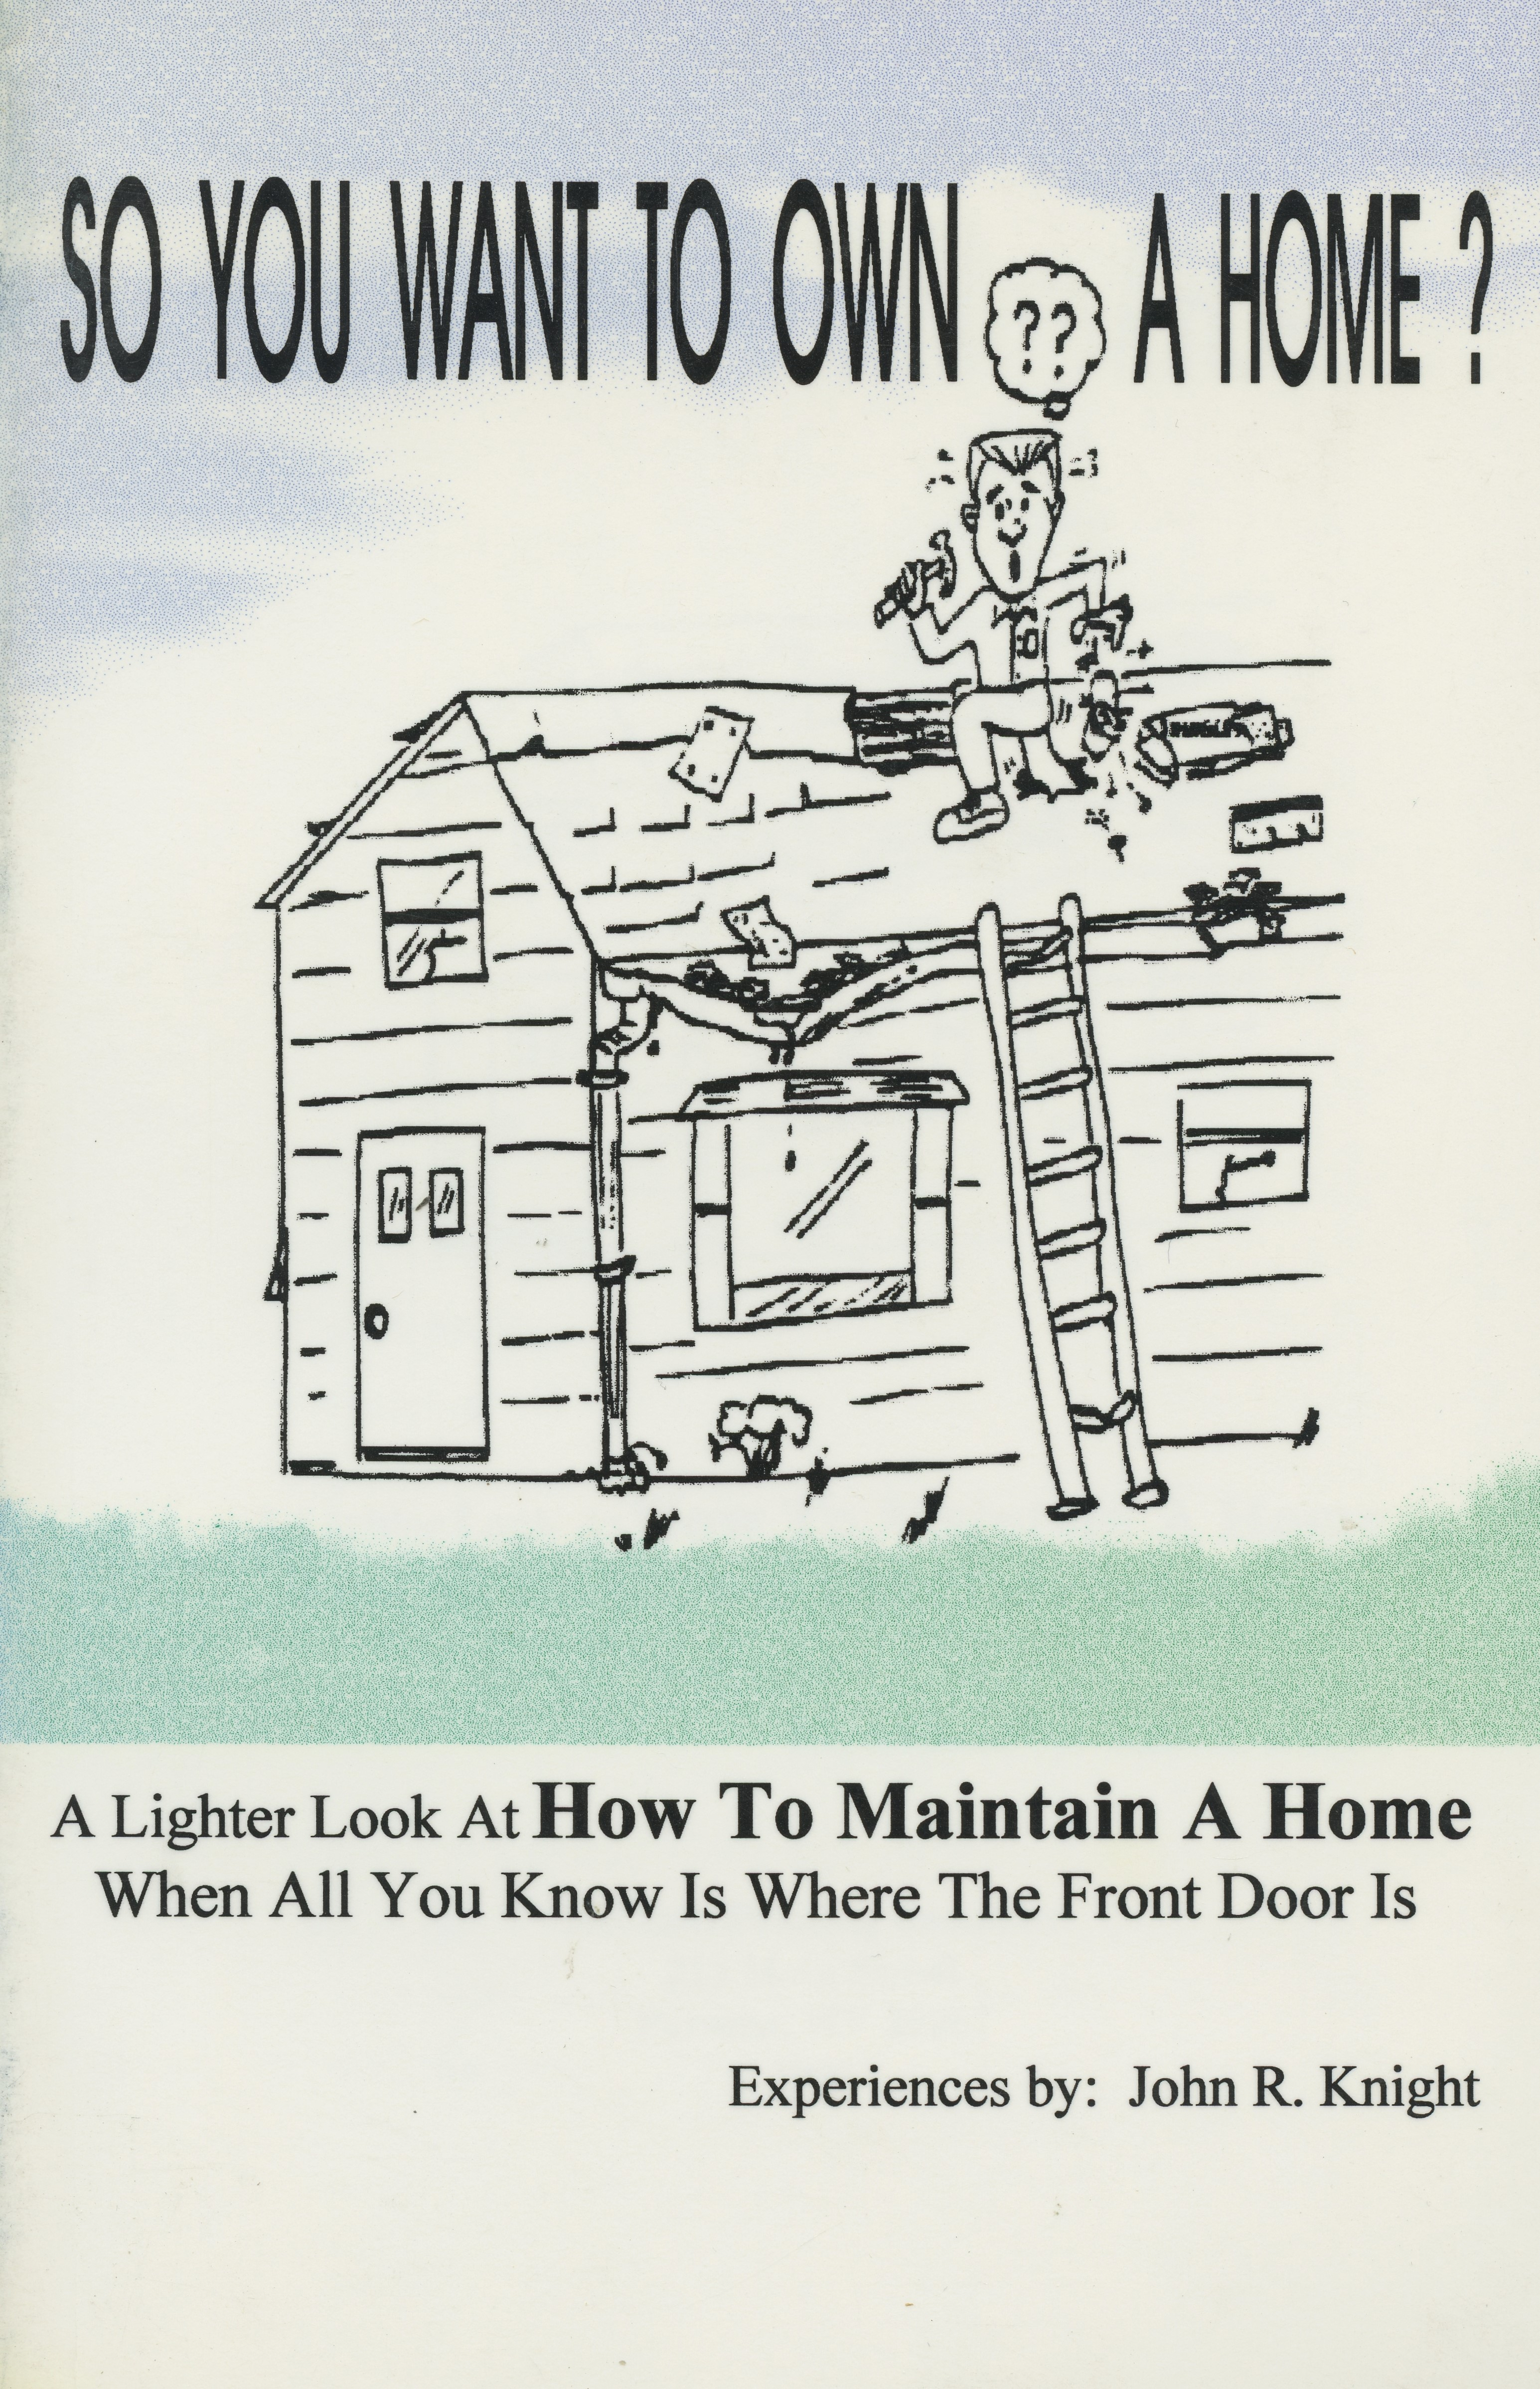 So You Want To Own a Home?